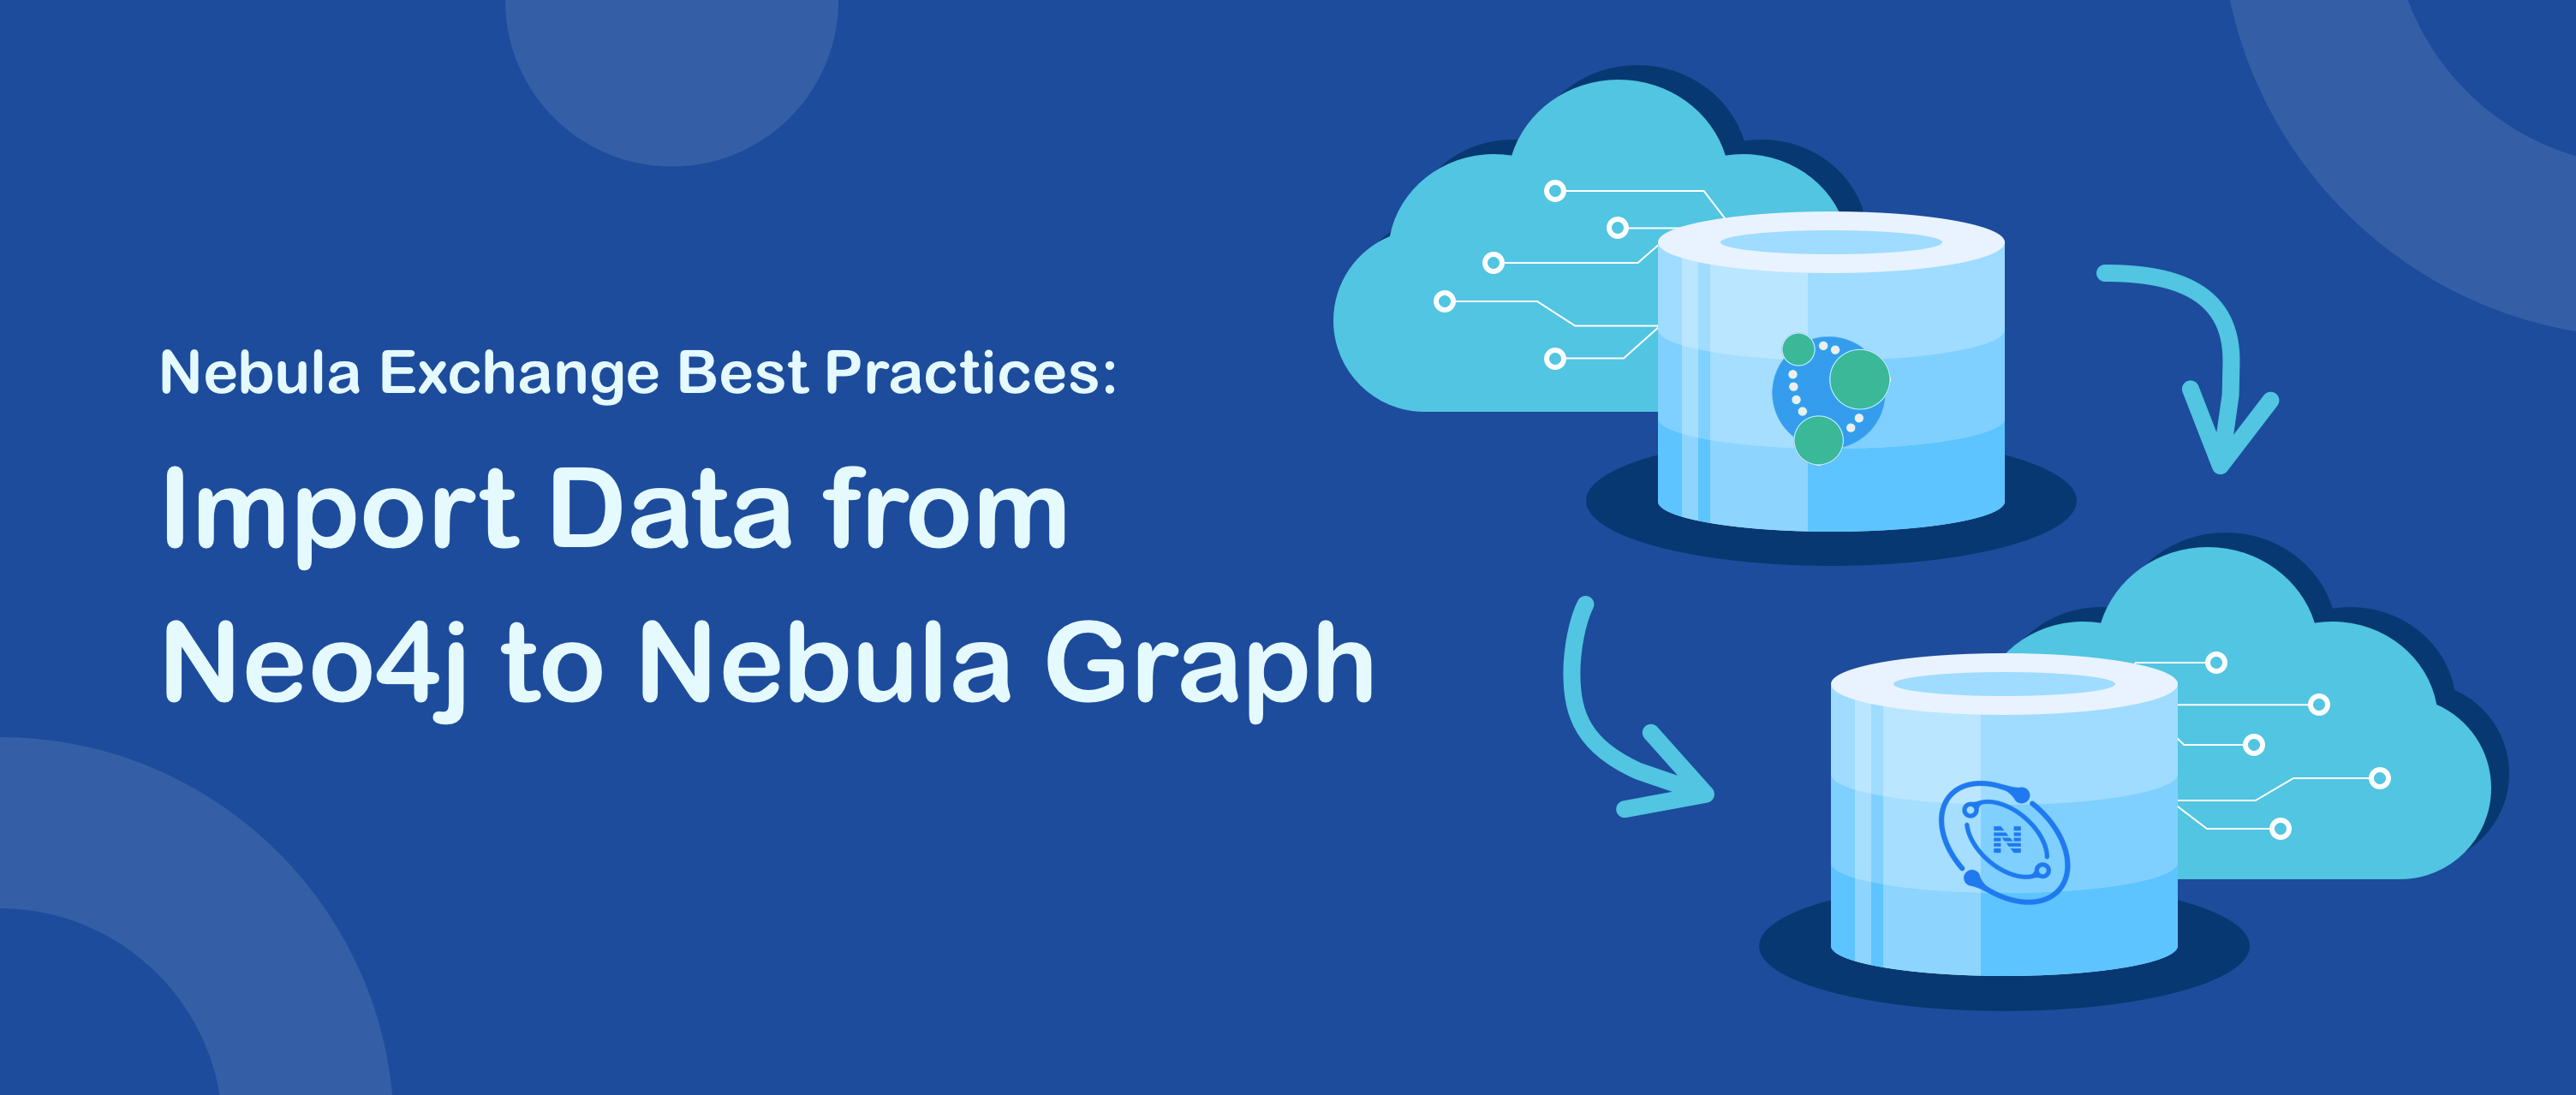 Import data from Neo4j to Nebula Graph